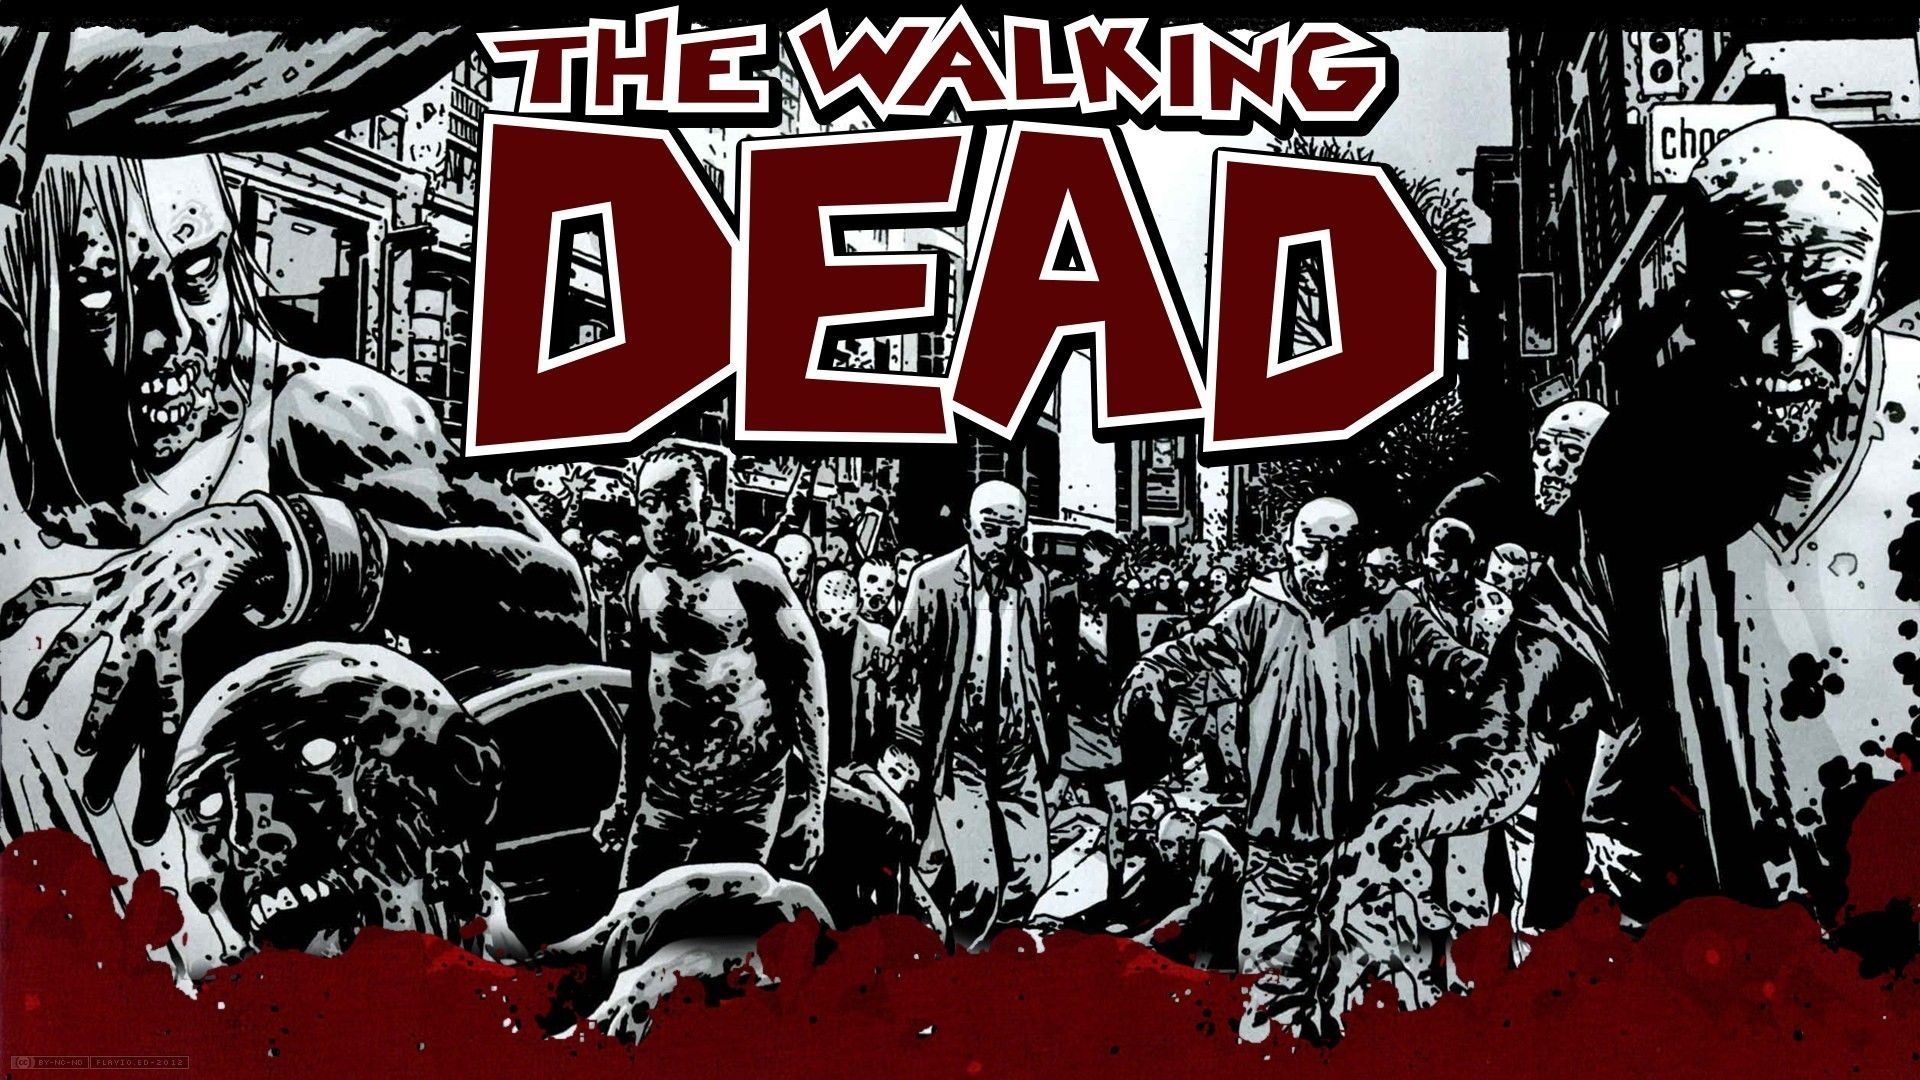 The Walking Dead Season Rick HD Wallpaper IHD Wallpapers 2560x1440 38